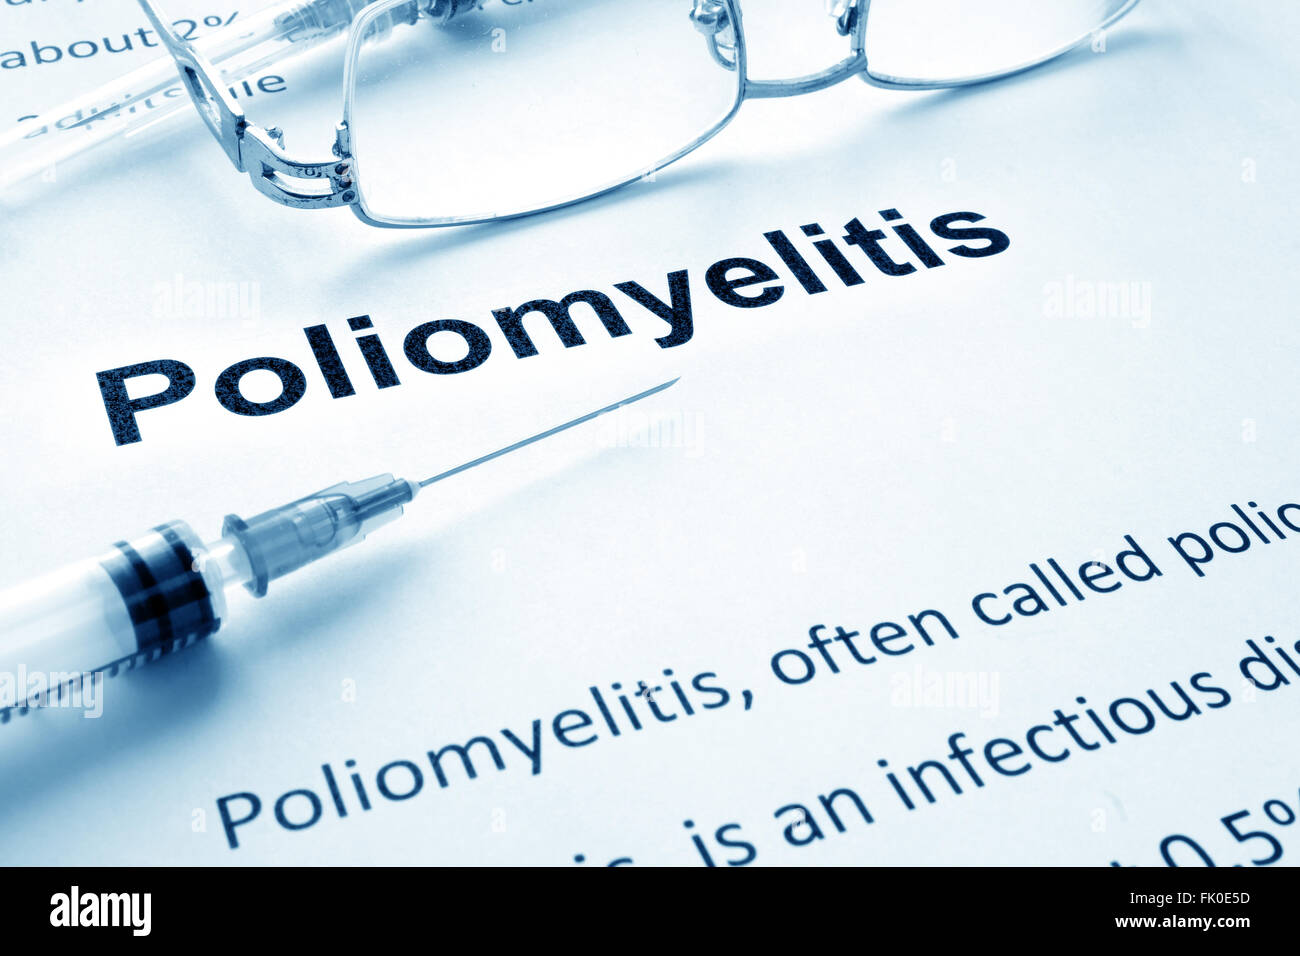 Paper with diagnosis Poliomyelitis. Polio vaccination concept. - Stock Image